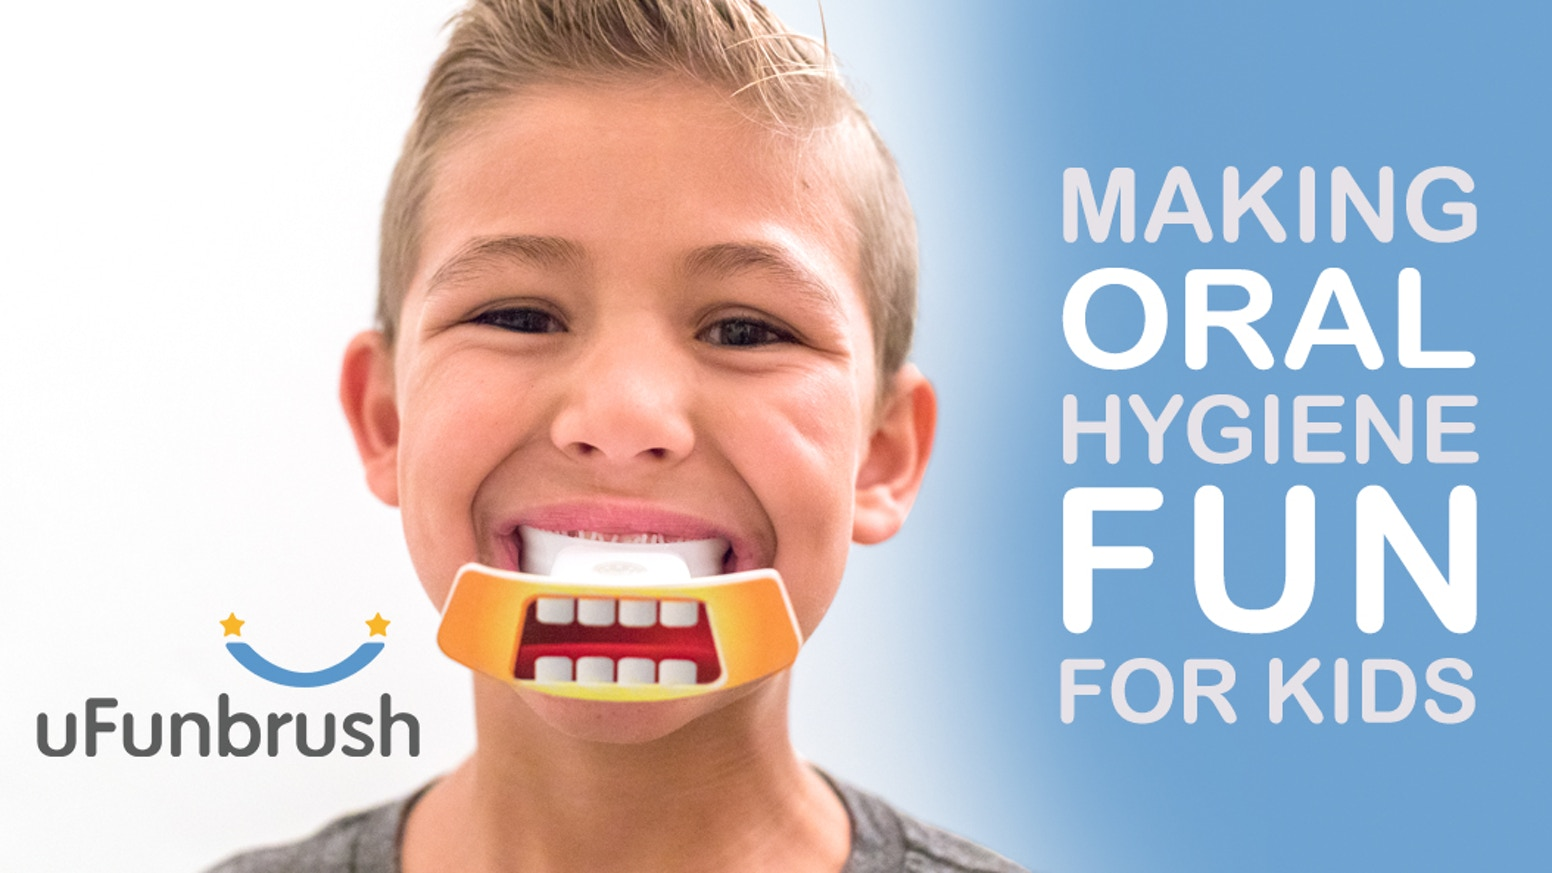 Patented U Sonic technology, Making oral hygiene EASIER, in just 10 seconds. For kids and adults.